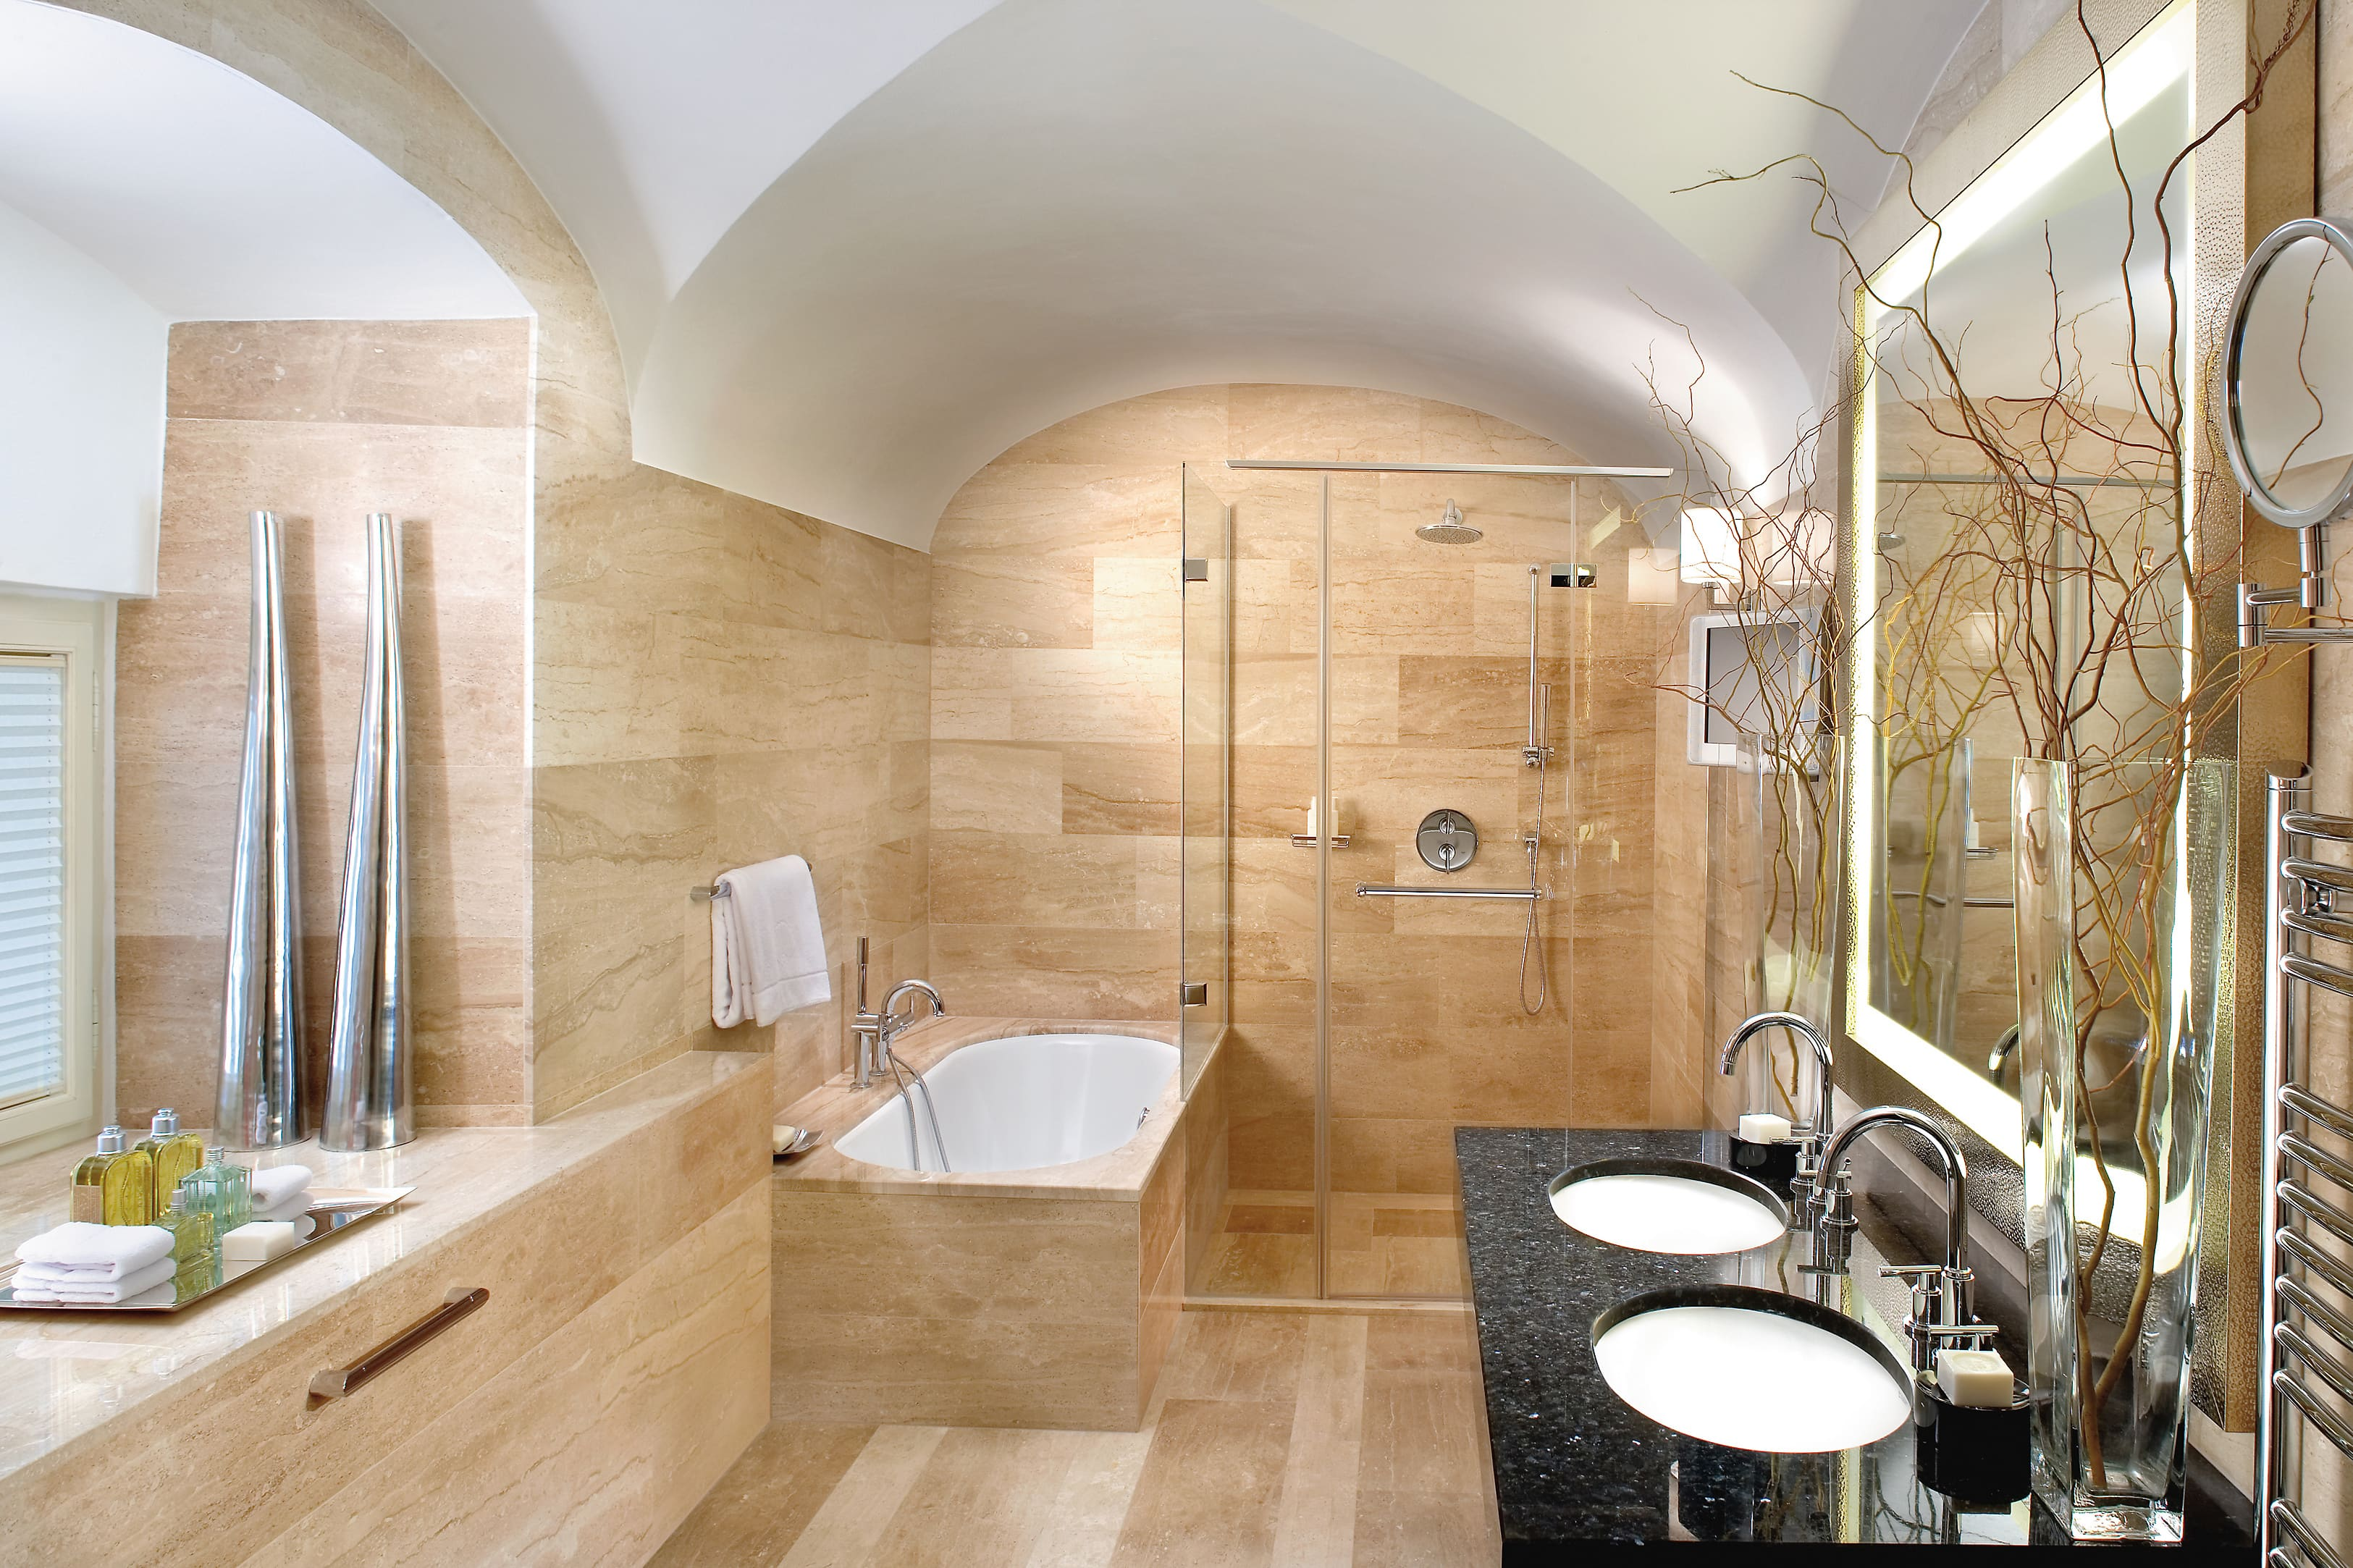 Prague hotel photo gallery mandarin oriental prague for Salle de bain de luxe moderne